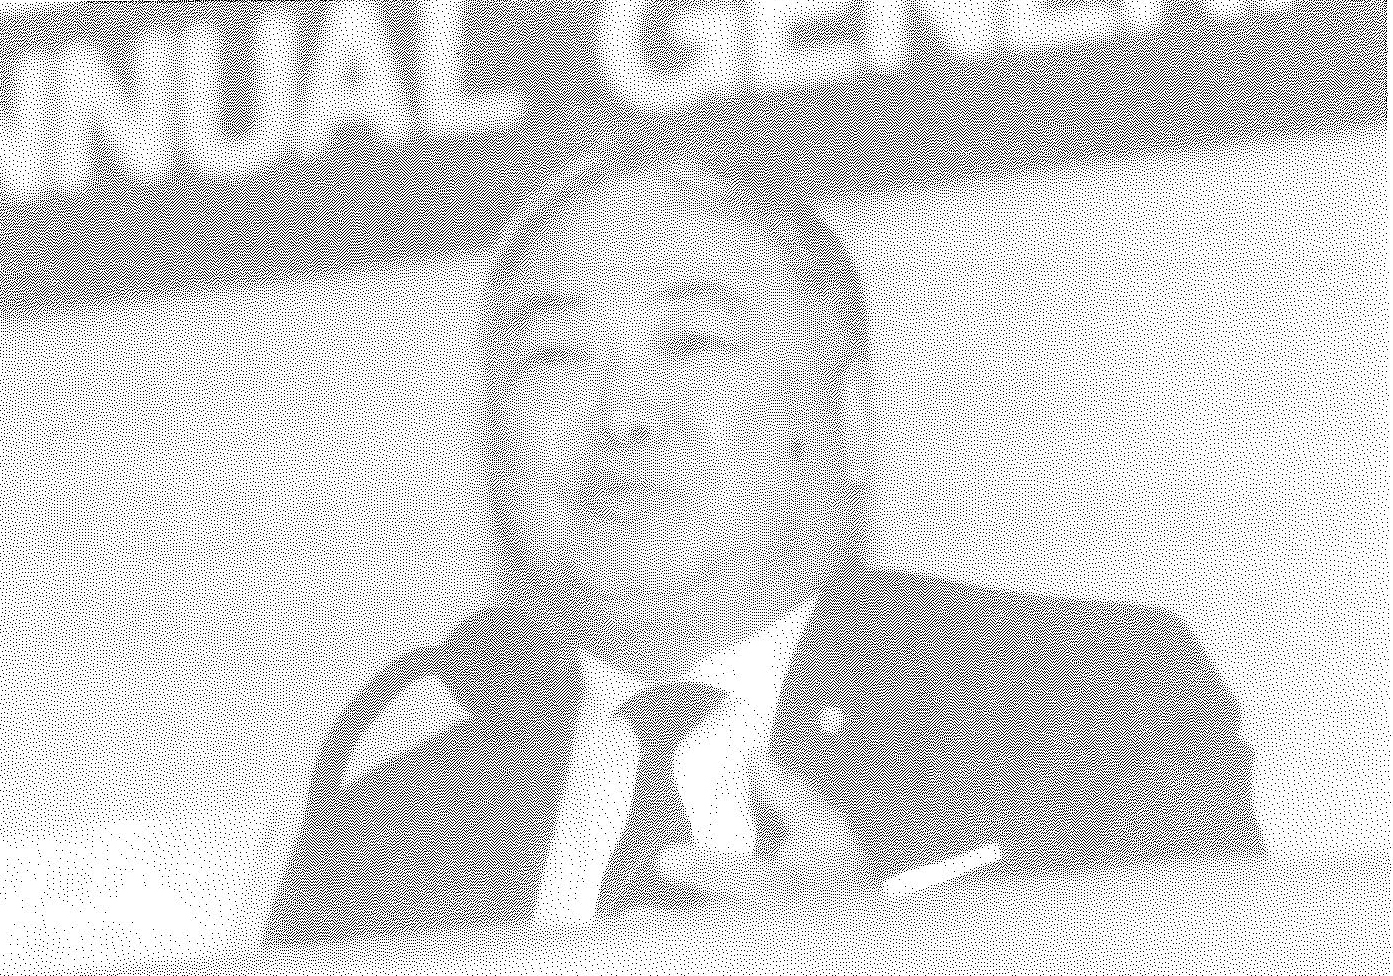 Mr. Hui Yin-fat (Taken in the member meeting of Hong Kong Social Welfare Personnel Registration Council in 1995)